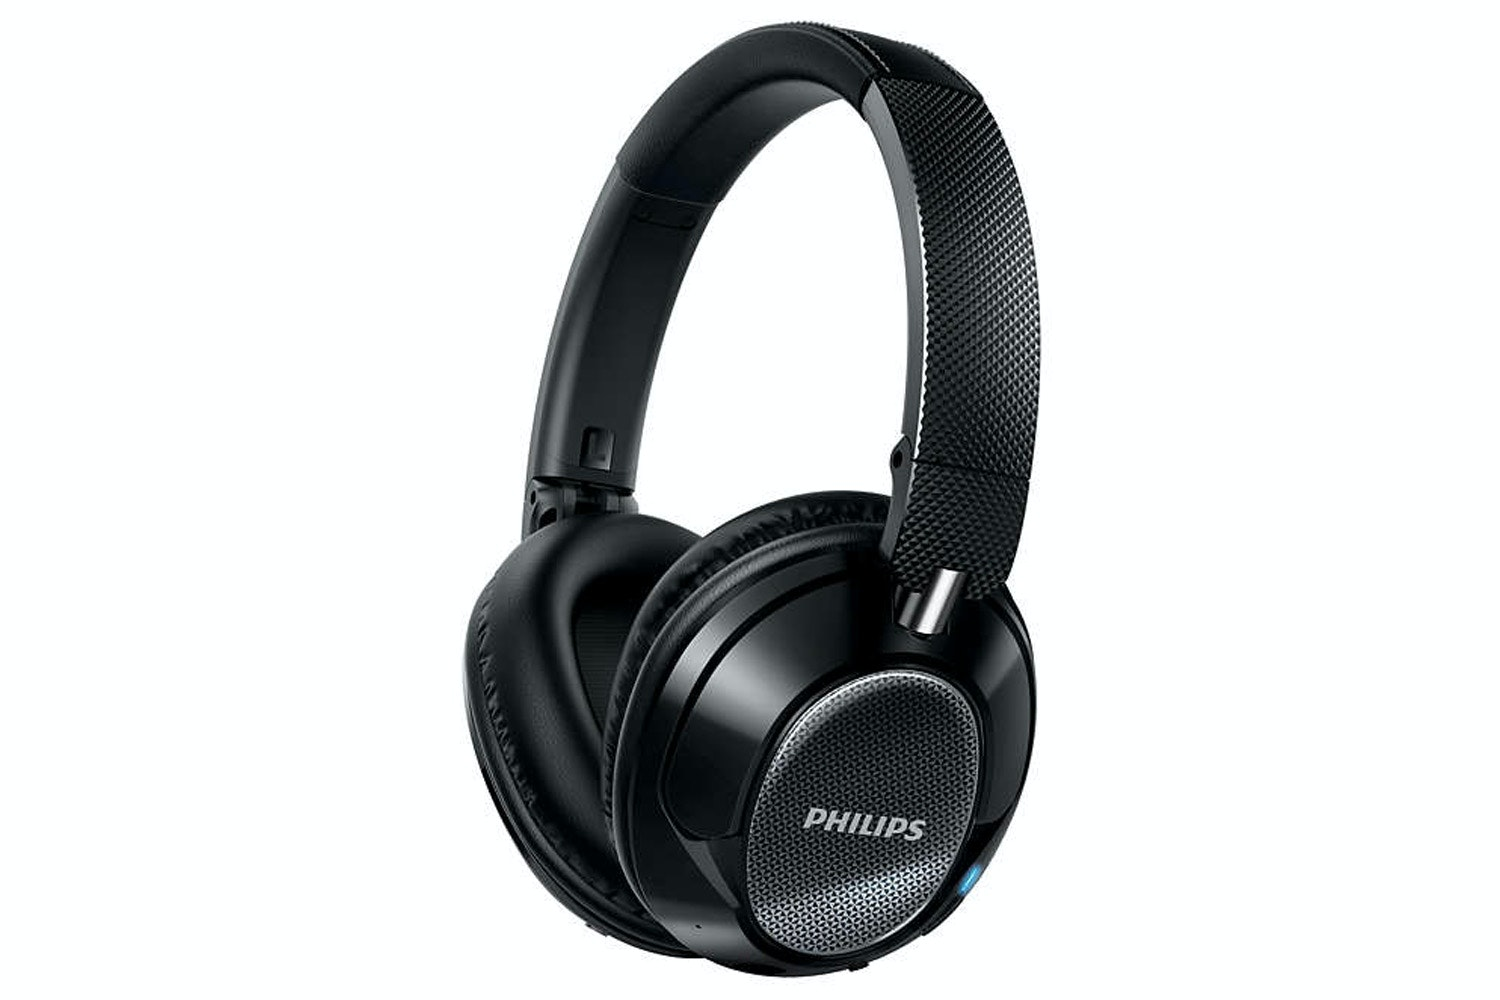 Philips Wireless Noise Cancelling Headphones | SHB9850NC